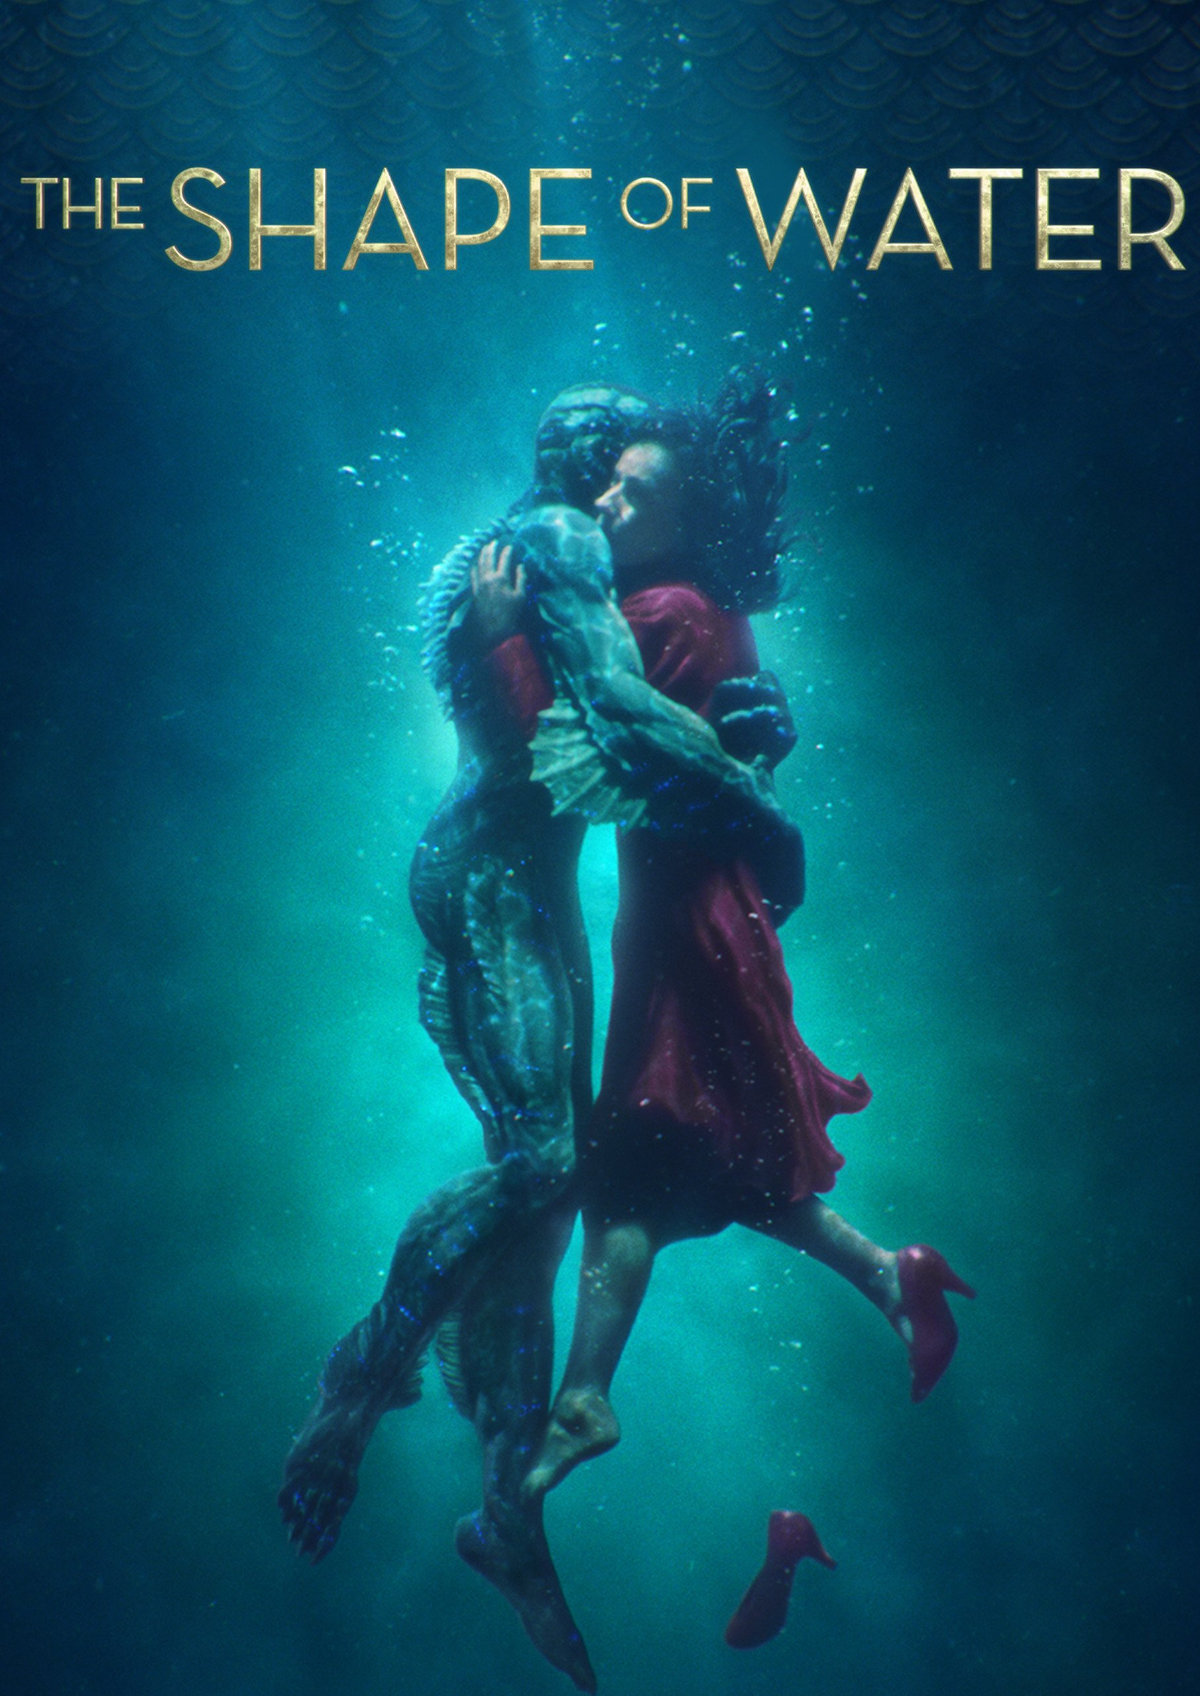 'The Shape of Water' movie poster